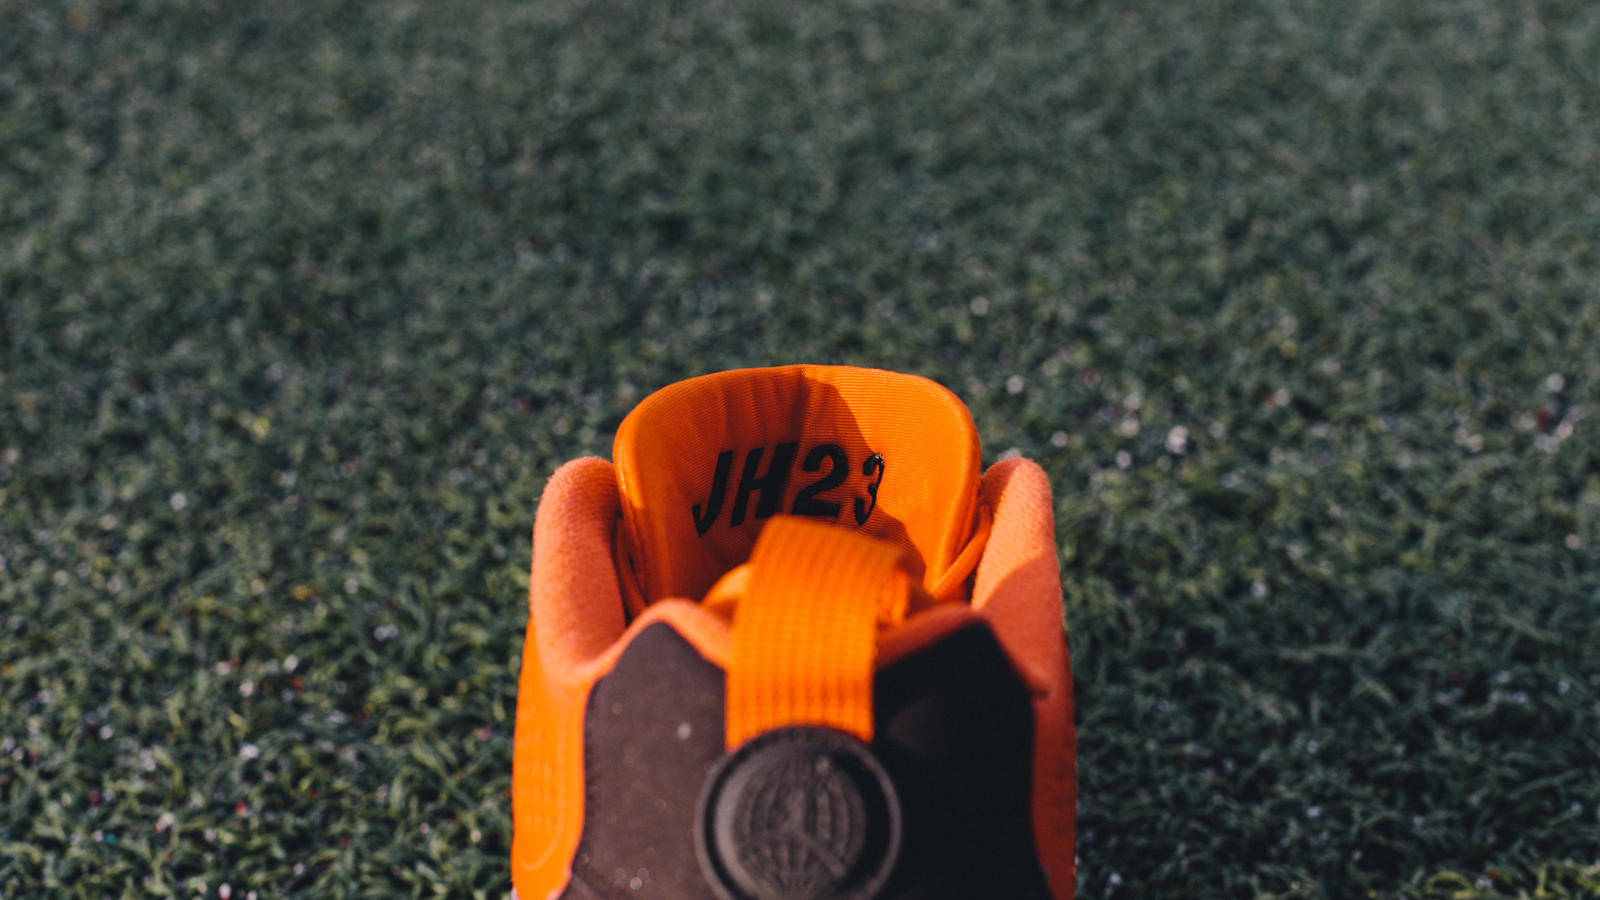 Joe Haden Air Jordan IX PE Cleat